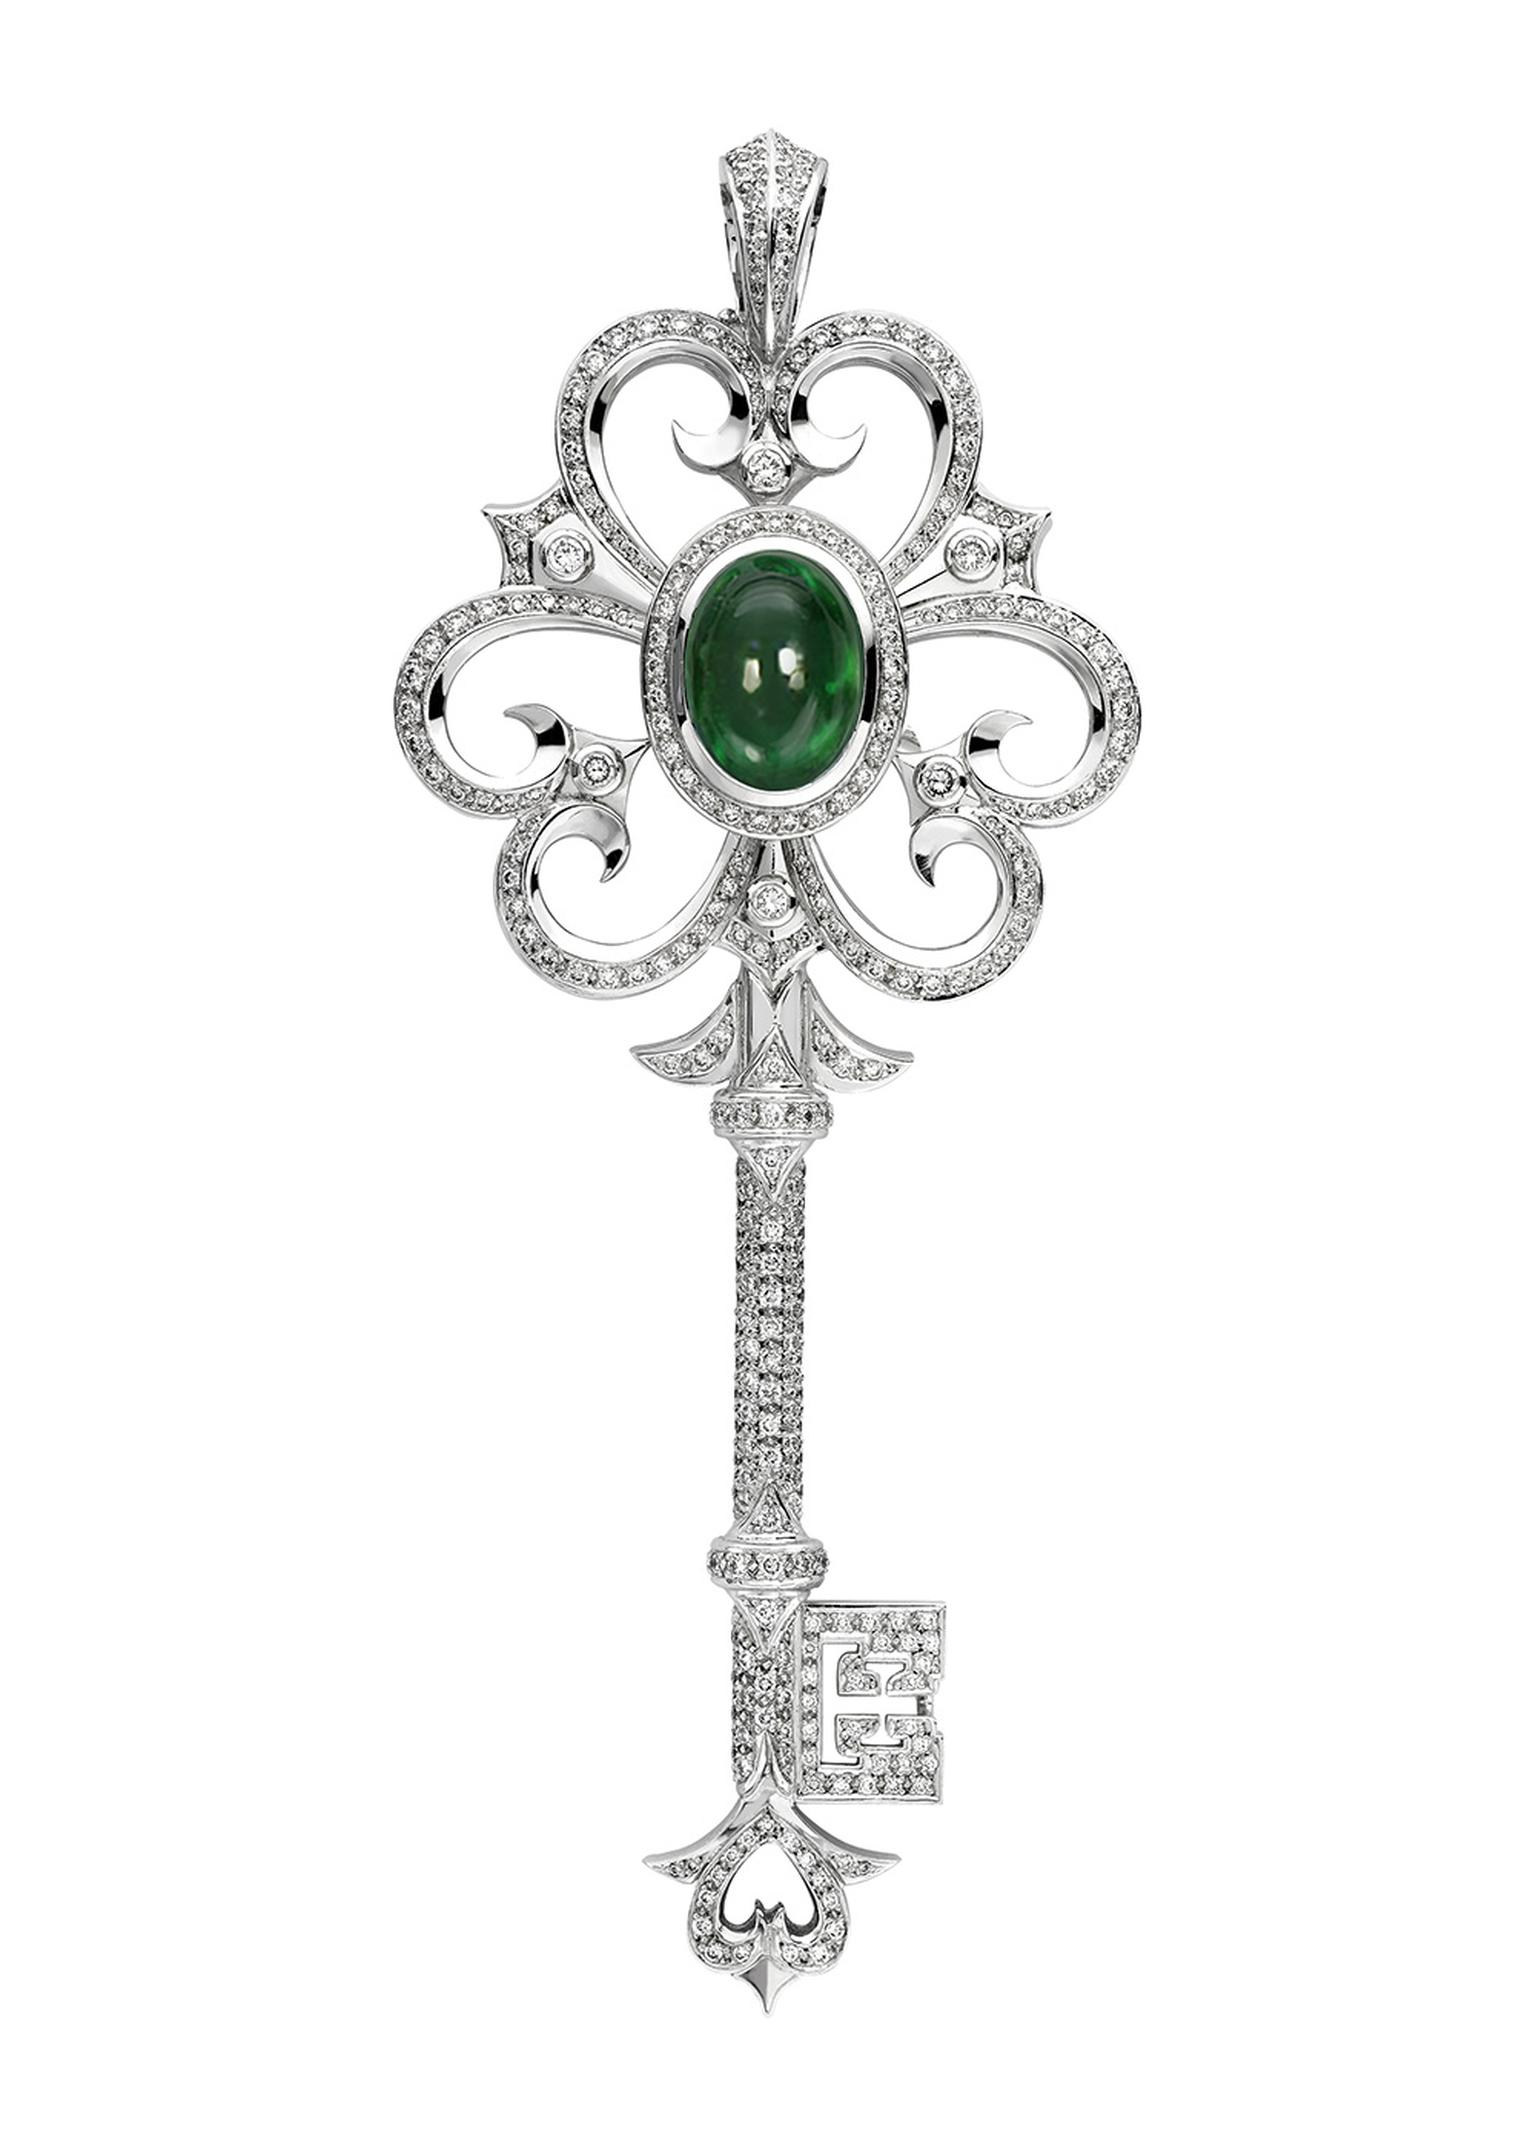 From Theo Fennell's 'Keys' collection, this white gold key pendant features an exceptional 8.70ct emerald. At 110mm, the body of the pendant is adorned with 2.79ct of diamonds.